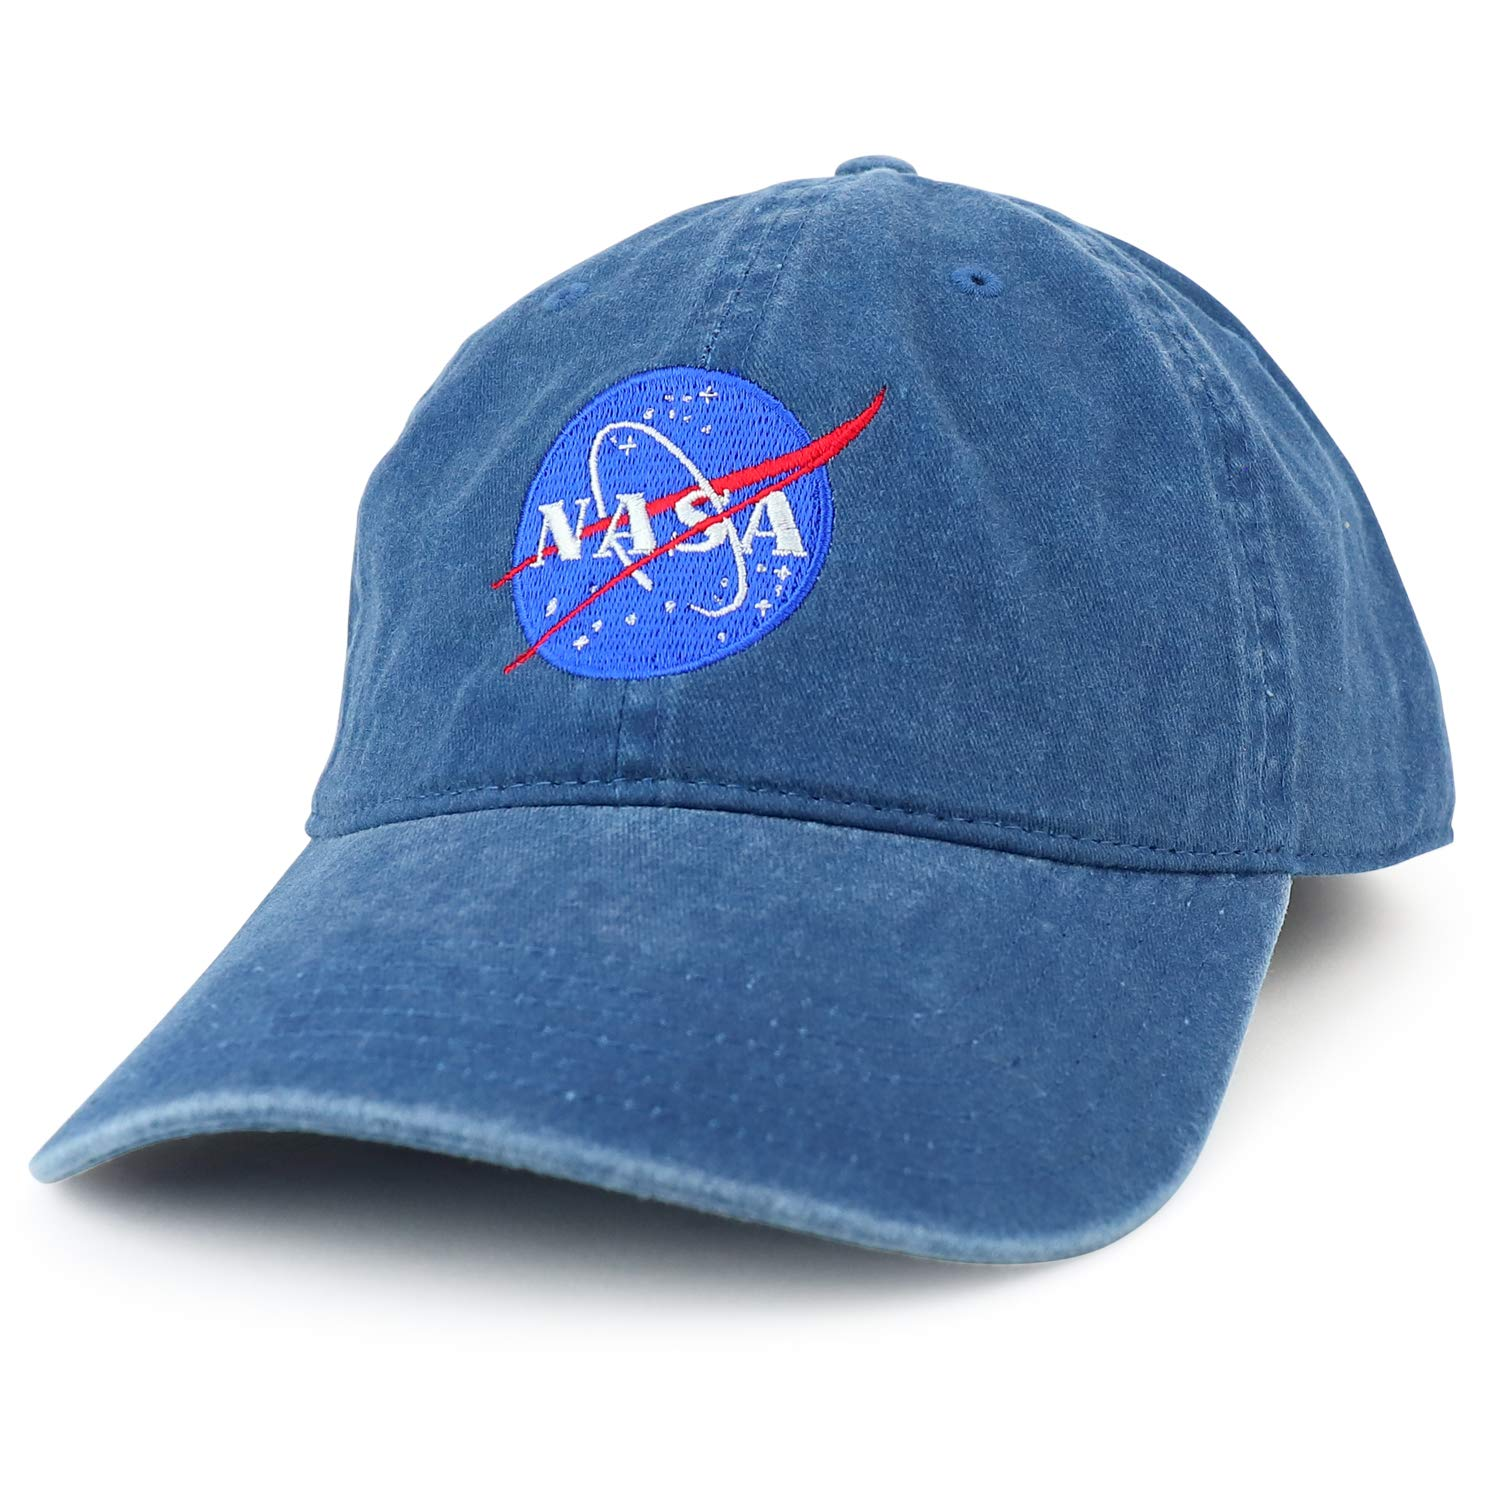 2ff07a72d22 Armycrew XXL NASA Insignia Logo Pigment Dyed Unstructured Baseball Cap -  Black - 2XL at Amazon Men s Clothing store